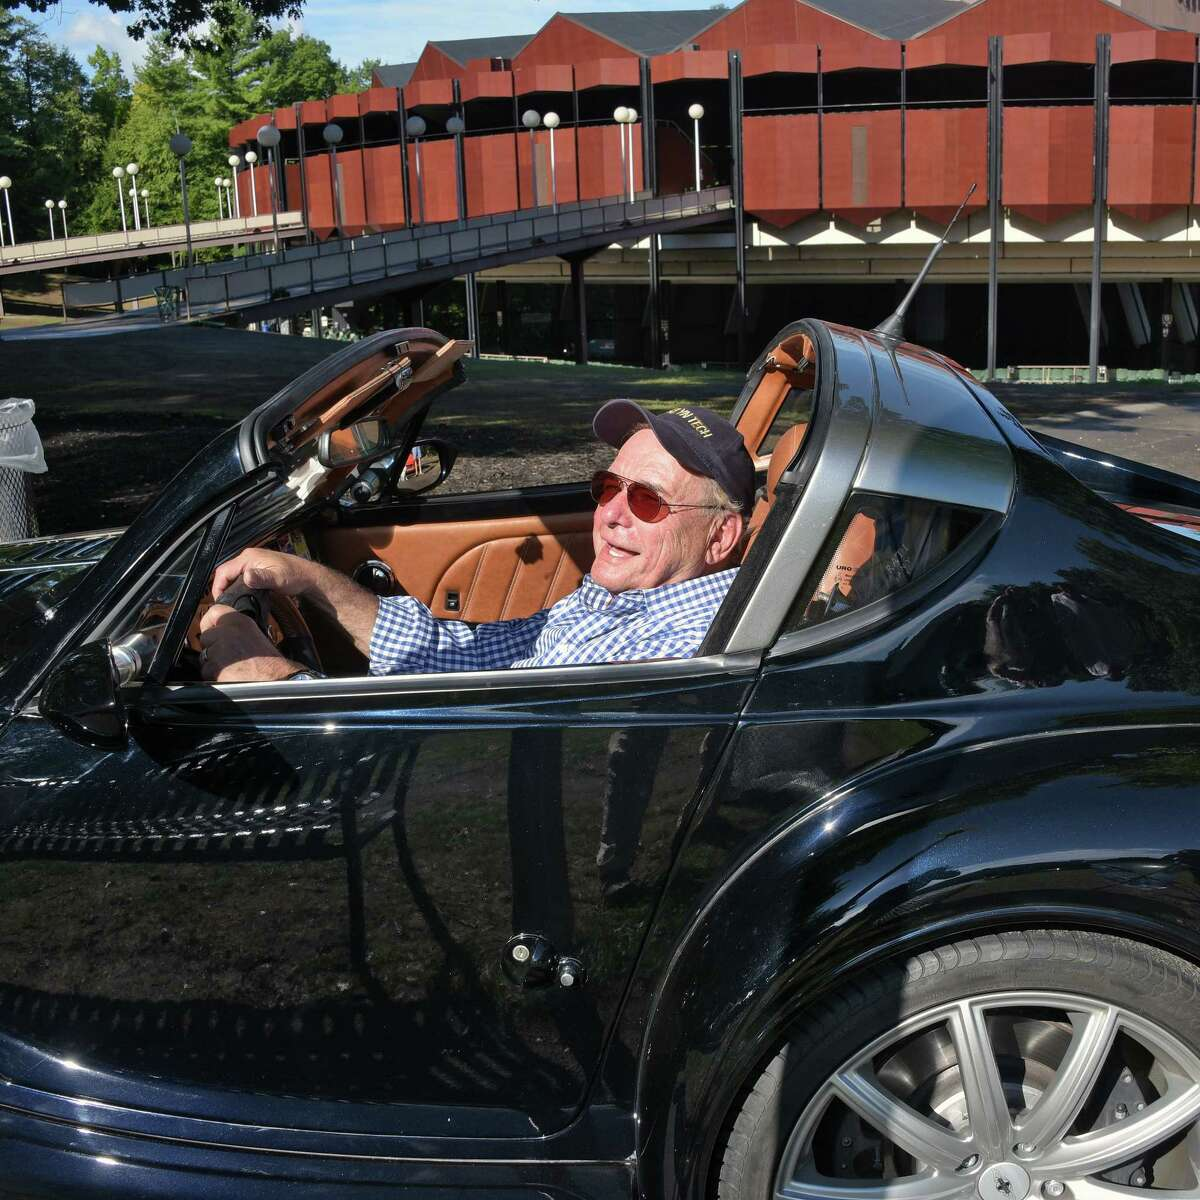 Dr. Joel Spiro of Albany drives his 2010 Morgan Aero SuperSports past the SPAC amphitheater during the Saratoga Wine & Food Festival and Concours D'Elegance sports car rally from SPAC to the Lake George Club Friday Sept. 9, 2016 in Saratoga Springs, NY. (John Carl D'Annibale / Times Union)